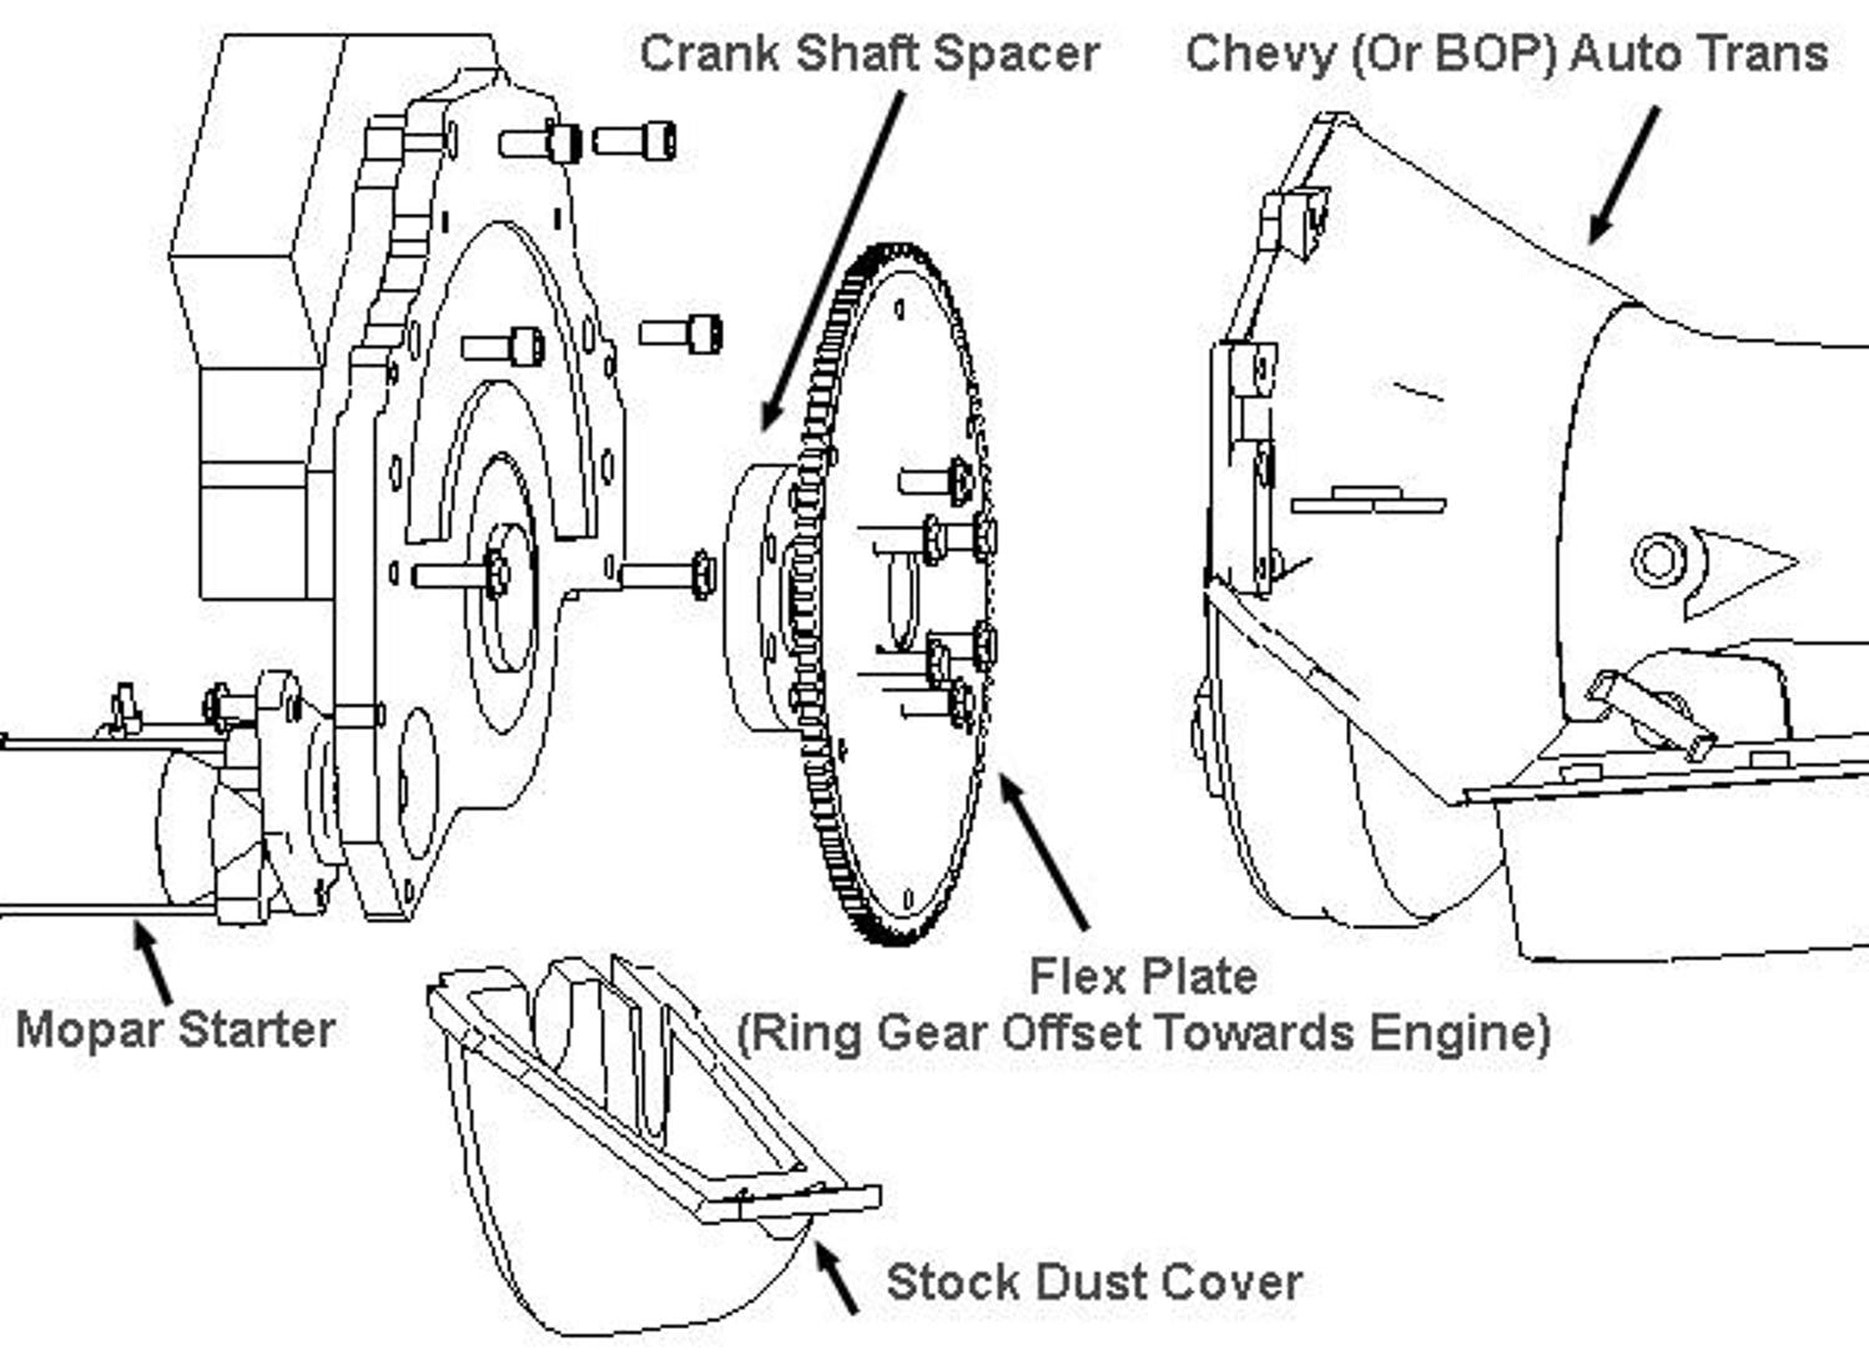 Motorcycle Gearbox Diagram Diagram] 700r Transmission Diagram Full Version Hd Quality Of Motorcycle Gearbox Diagram